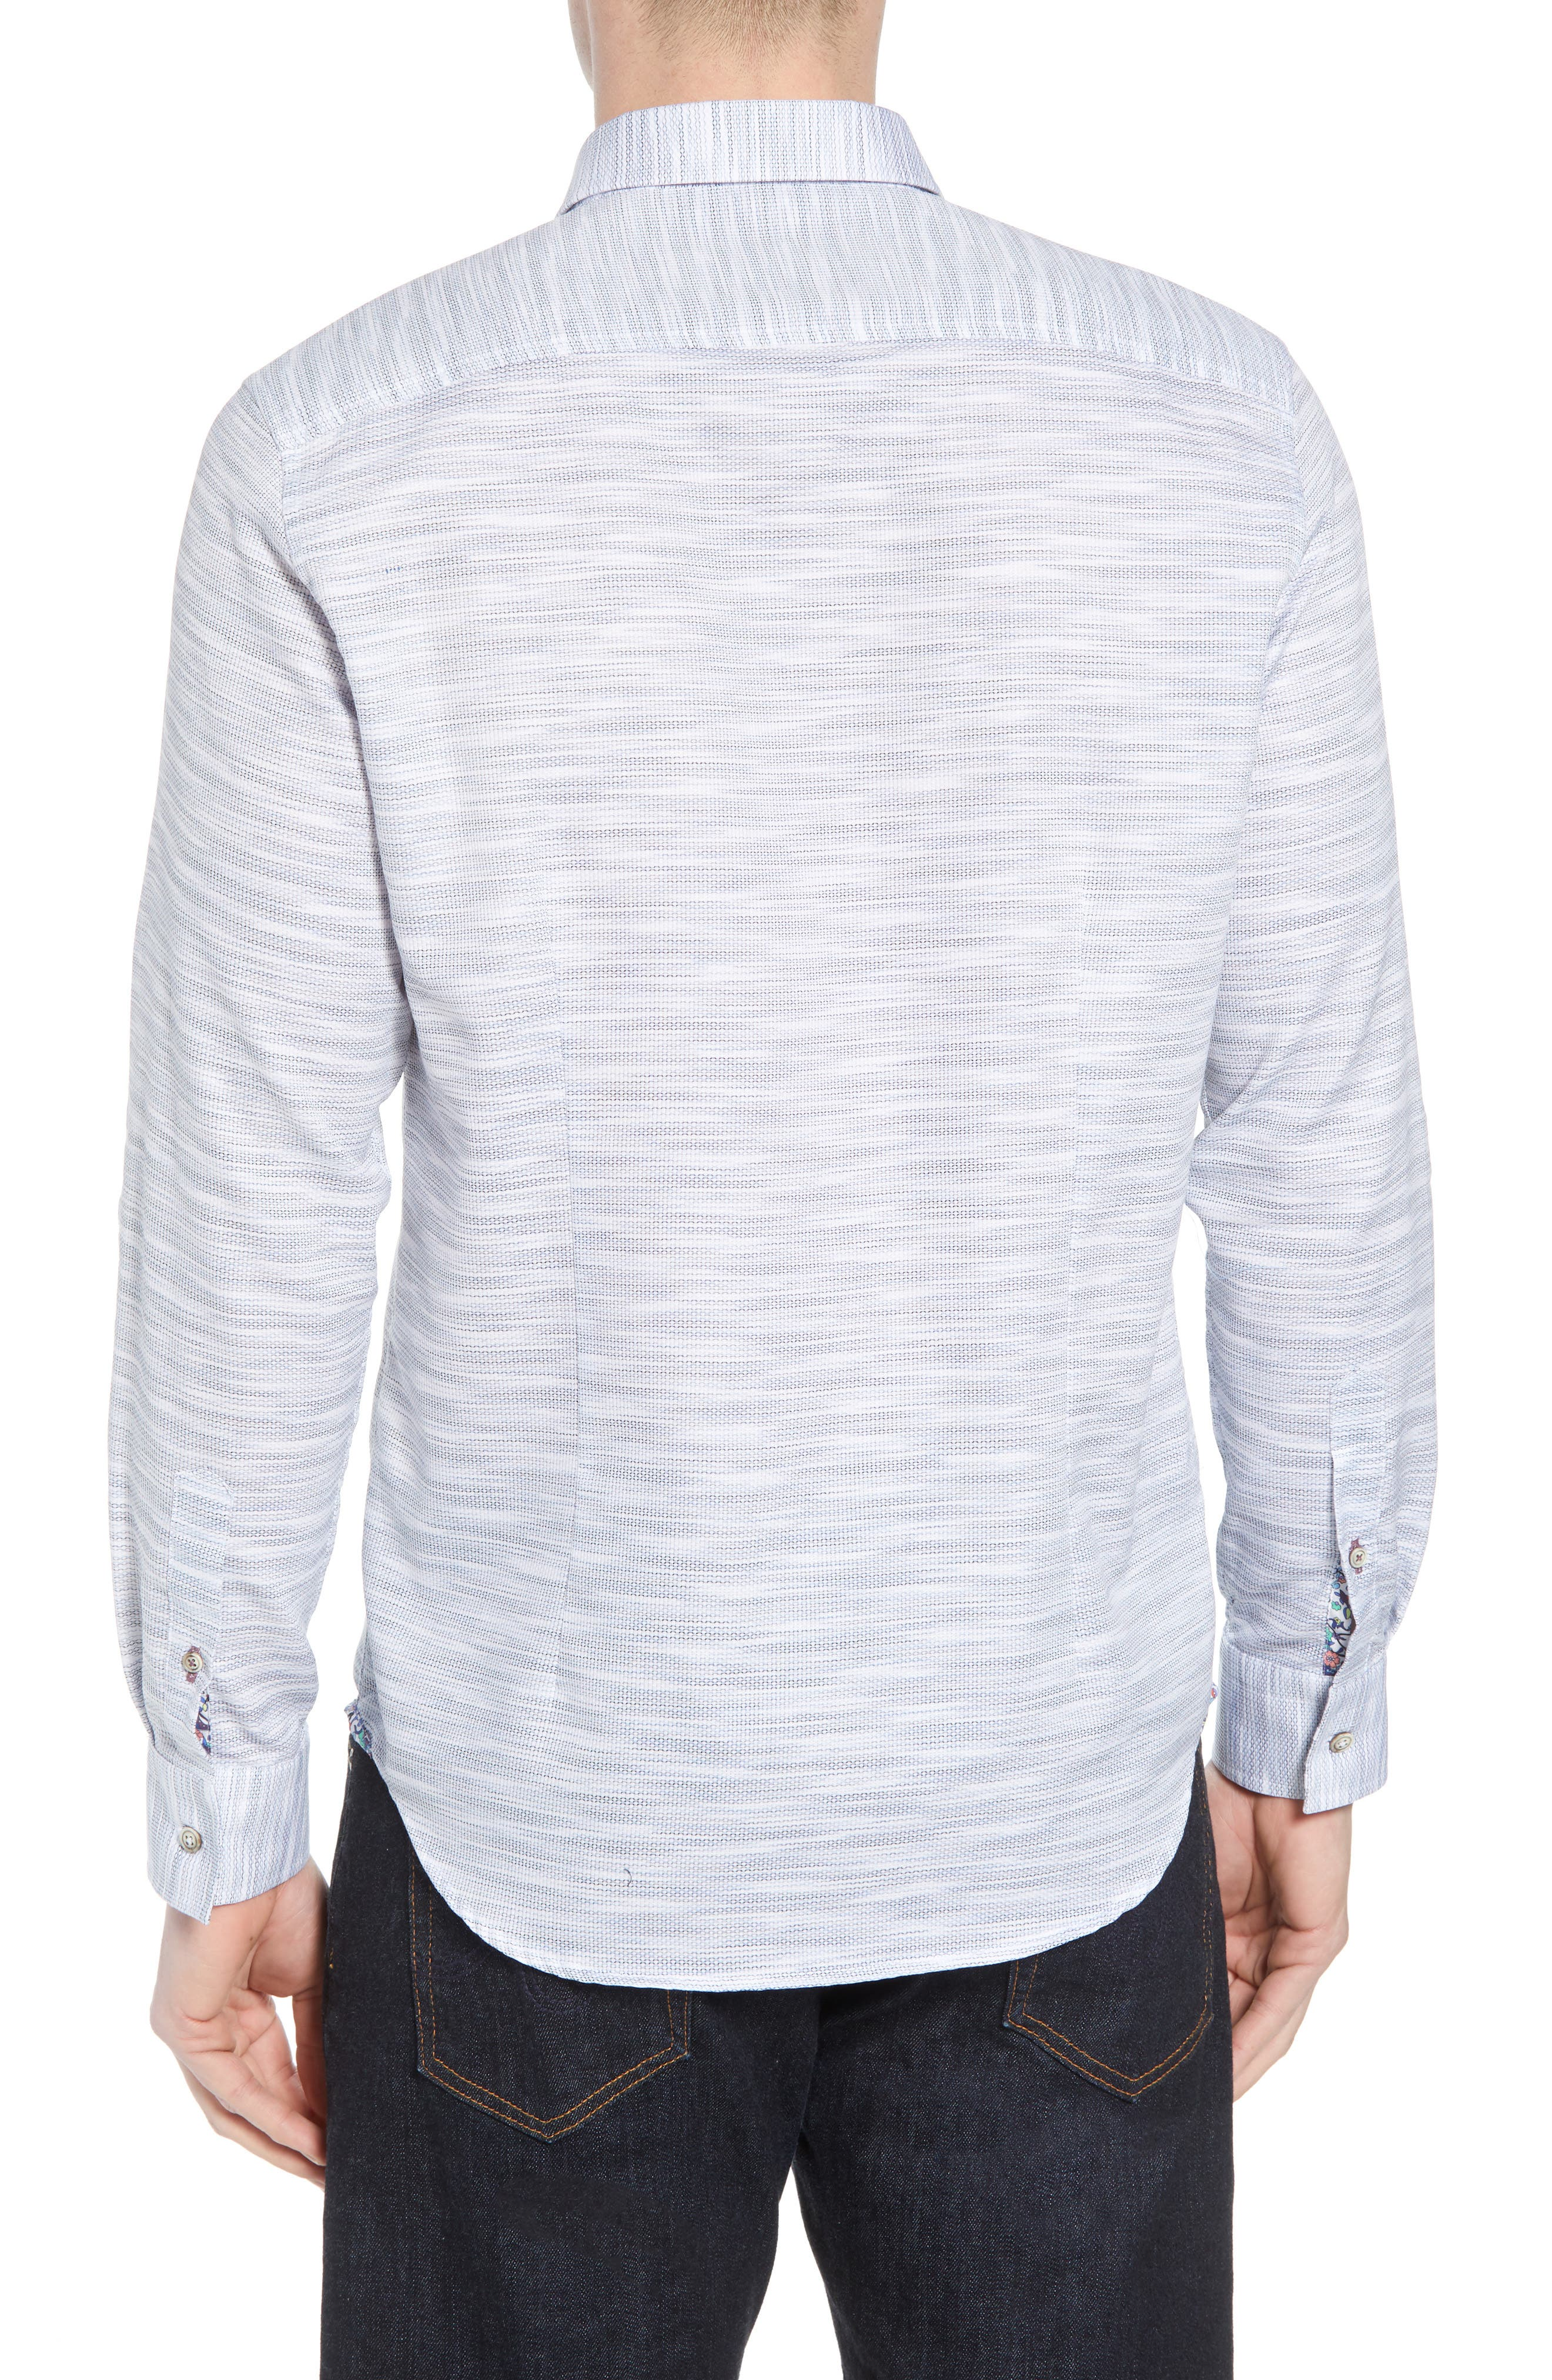 Tully Tailored Fit Sport Shirt,                             Alternate thumbnail 2, color,                             100